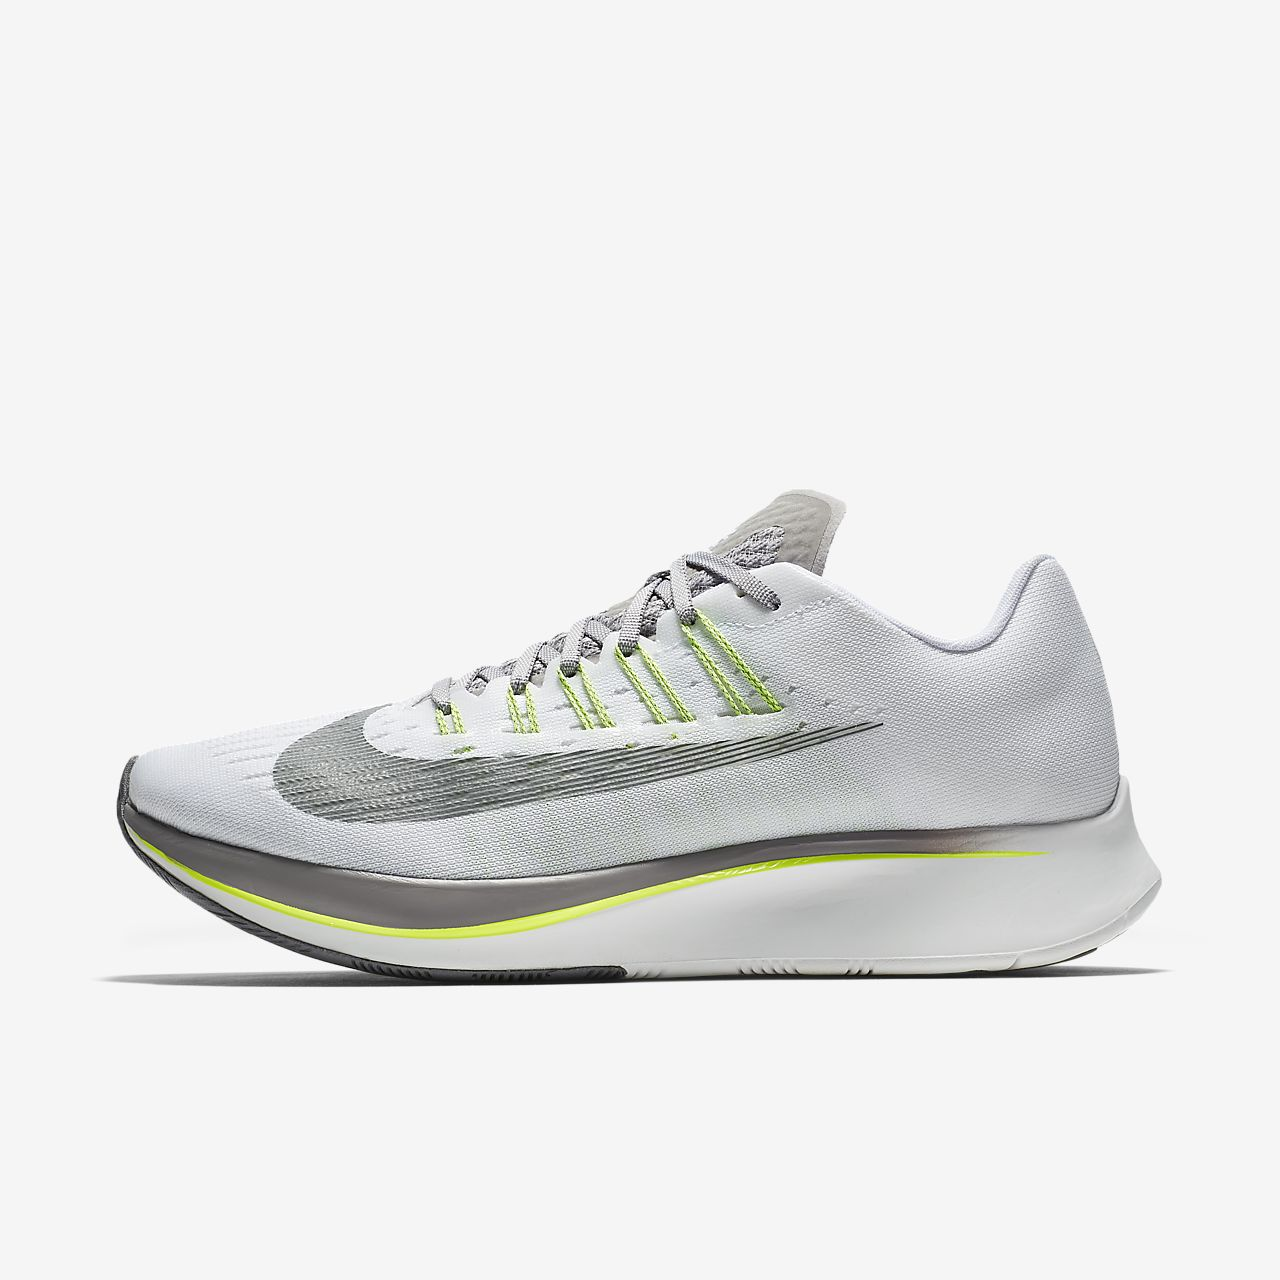 2076141b285 Nike Zoom Fly Men s Running Shoe. Nike.com